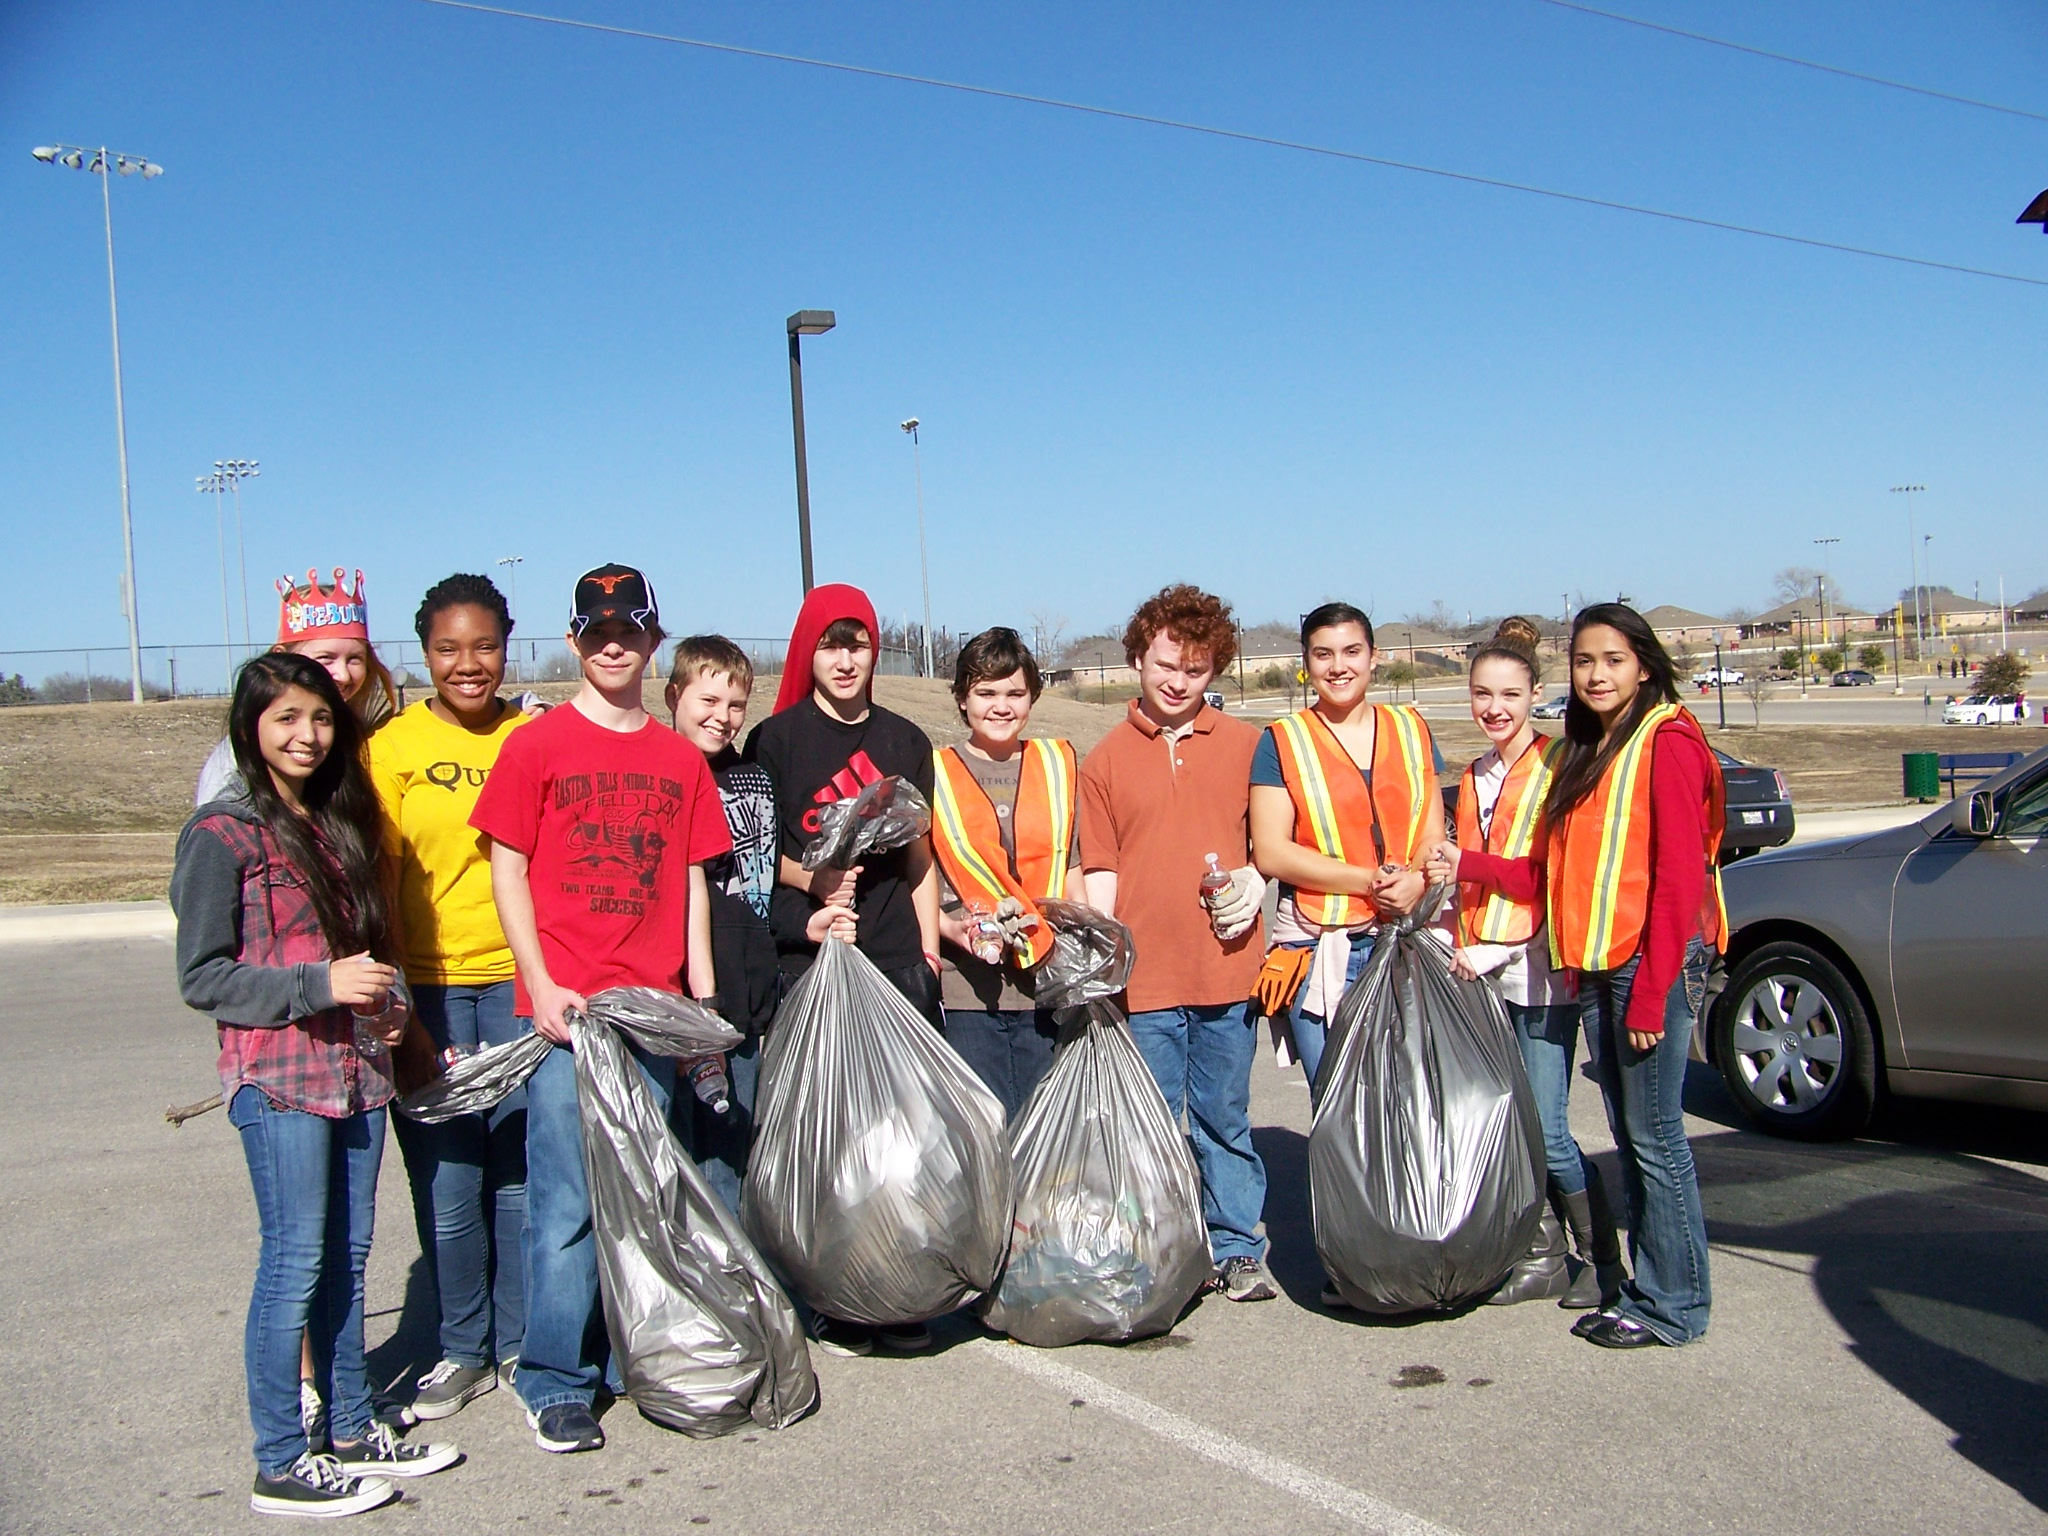 January Adopt a Spot - What an awesome job they did